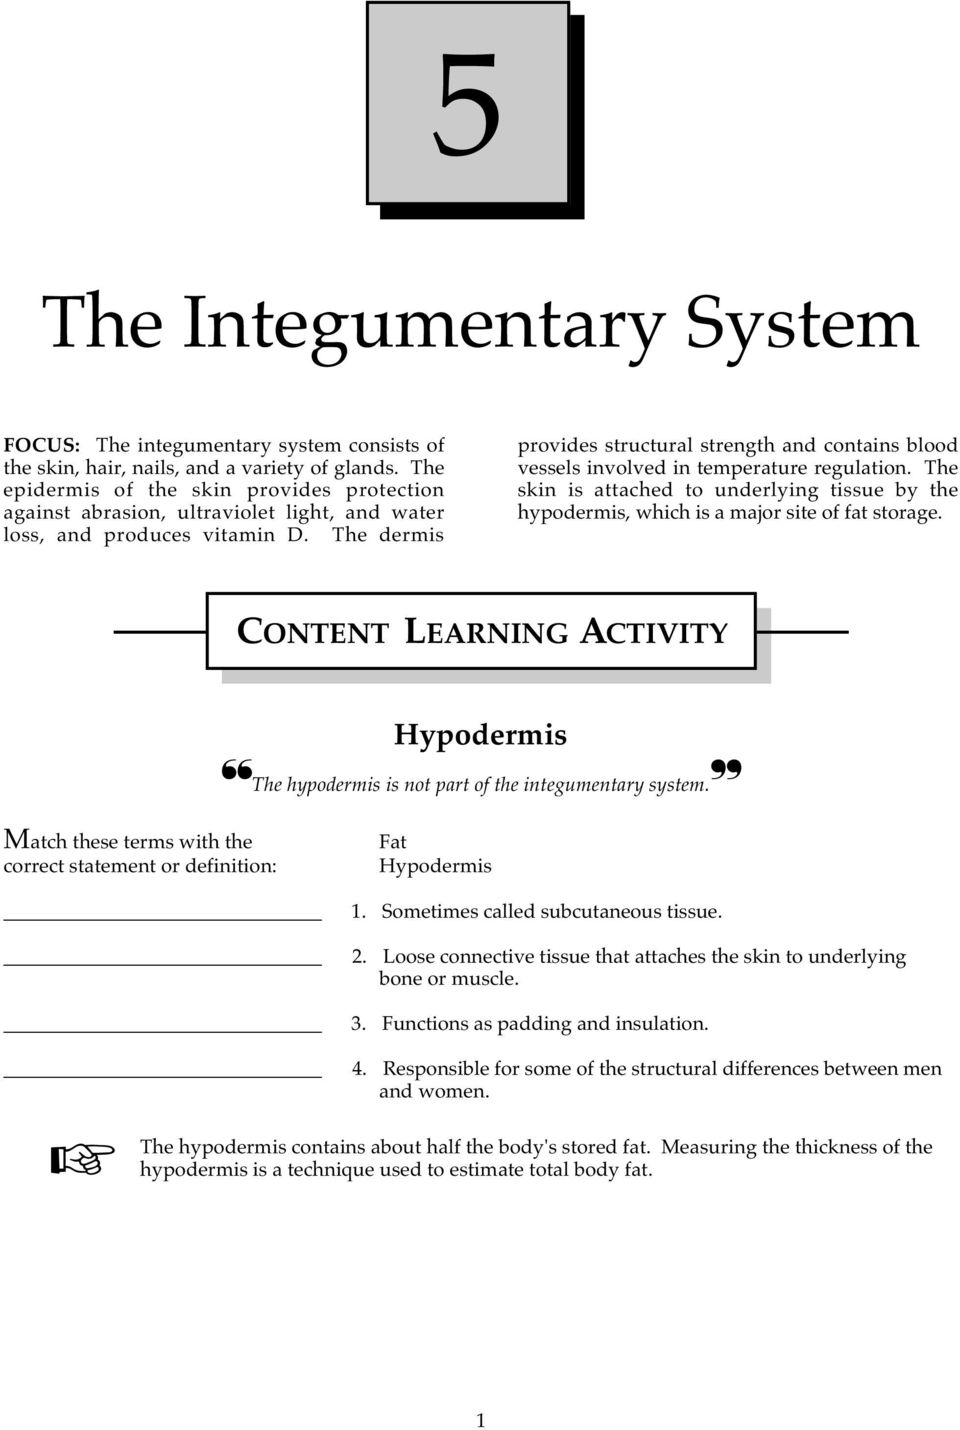 The Integumentary System Pdf